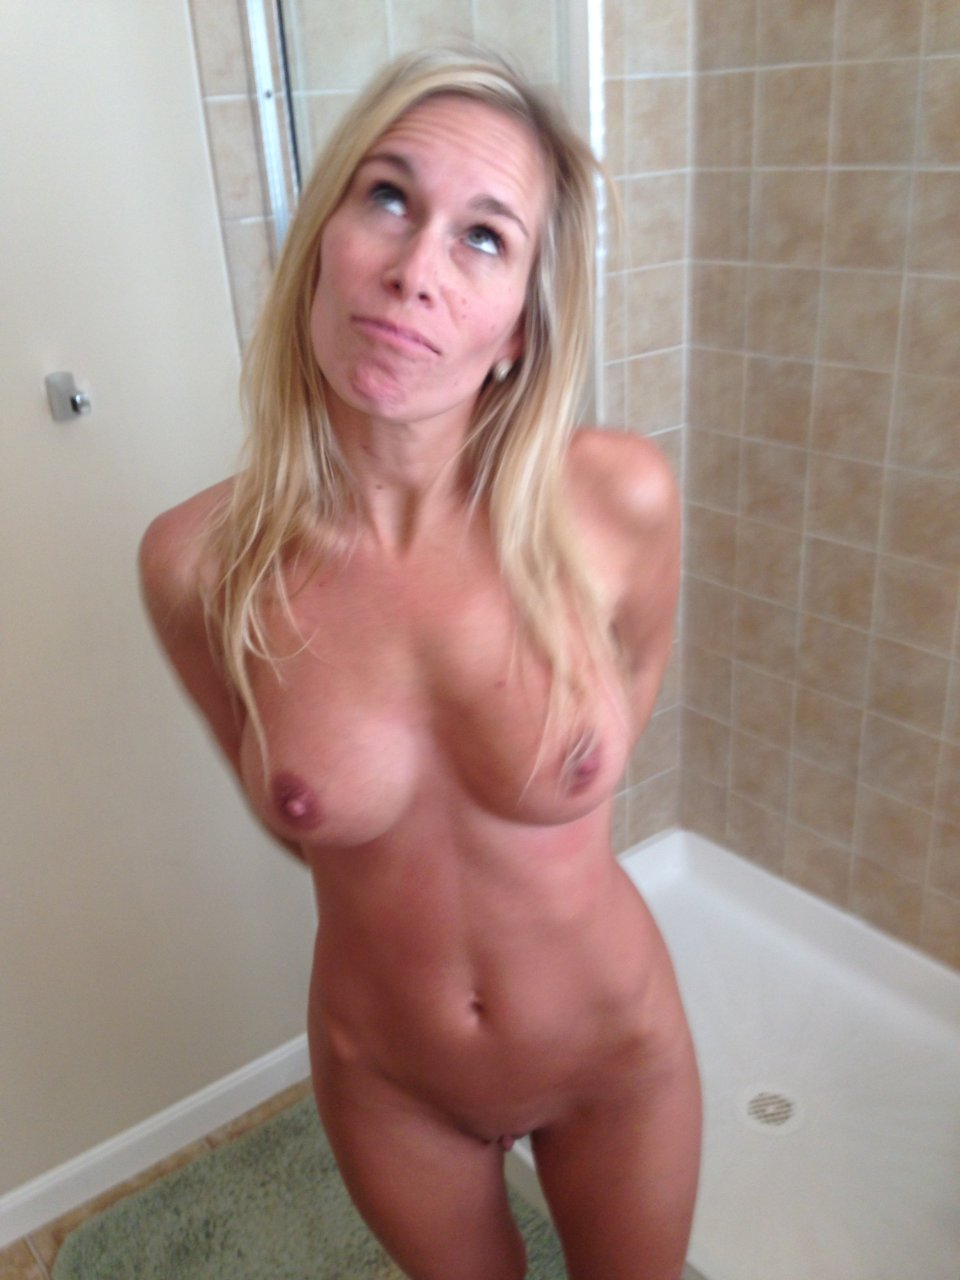 XXX Diana McCollister naked (33 photo), Tits, Paparazzi, Feet, cleavage 2015